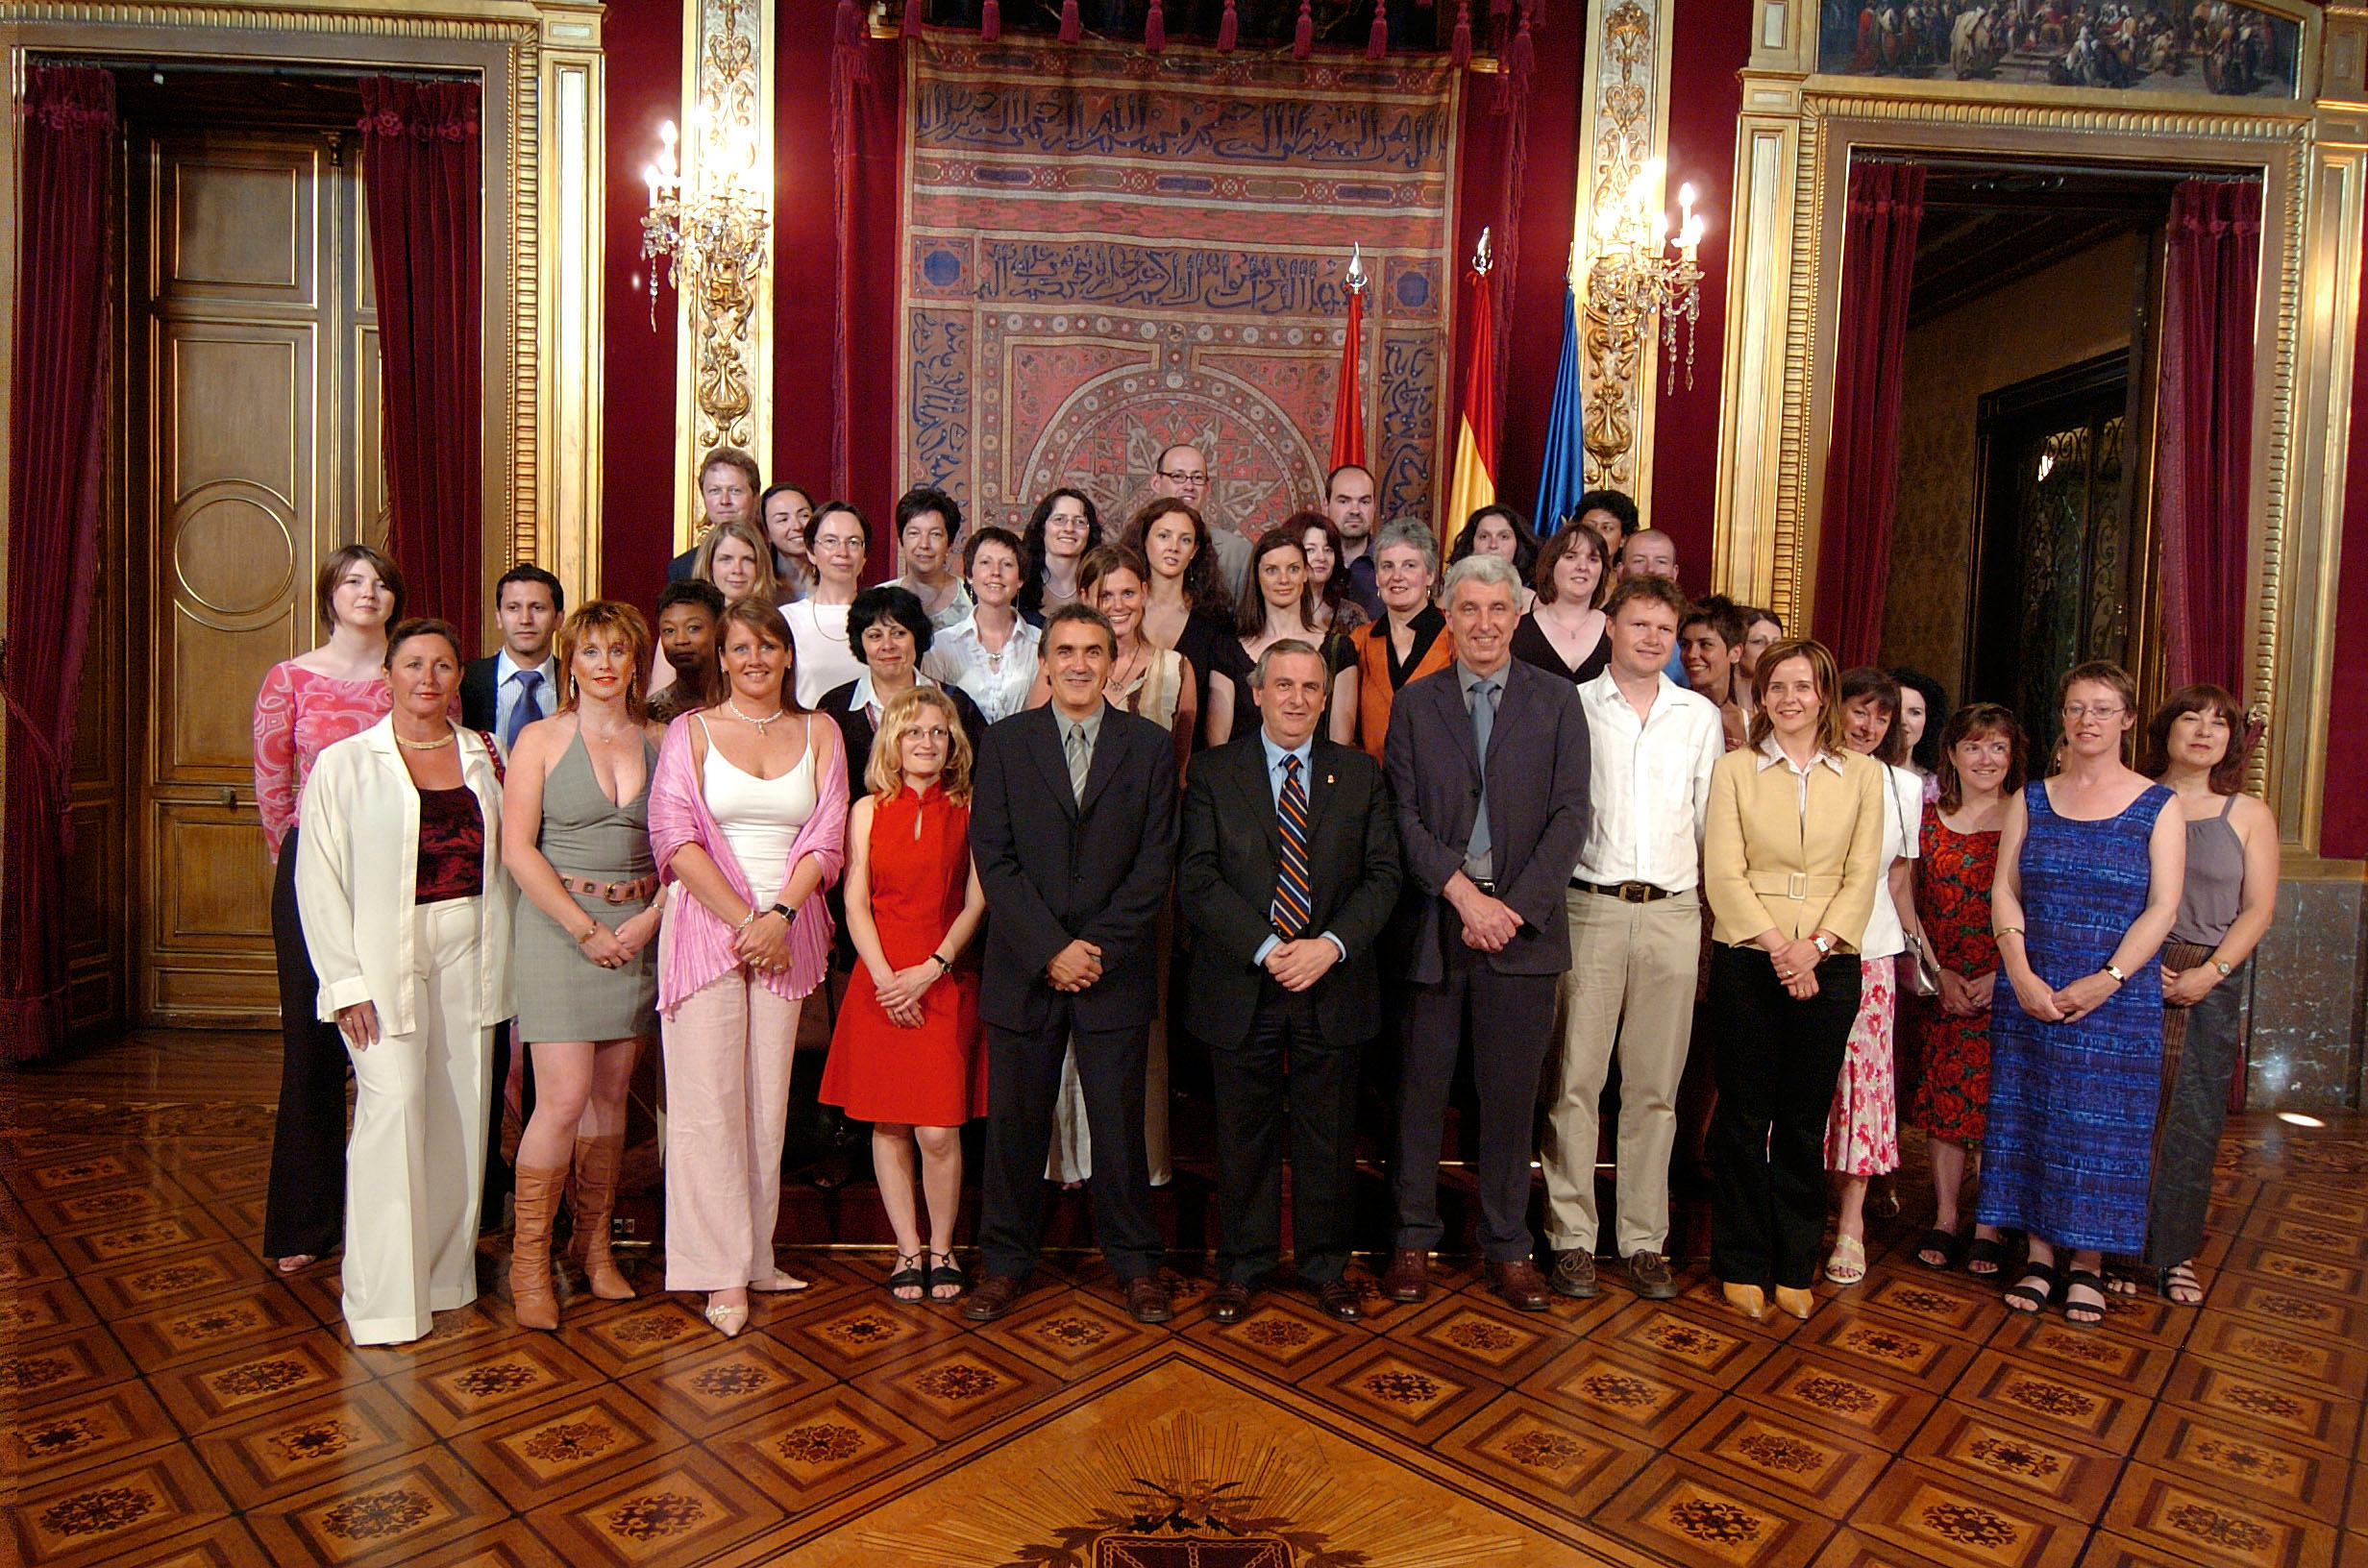 direccion general de politica linguistica y universidades gobier: